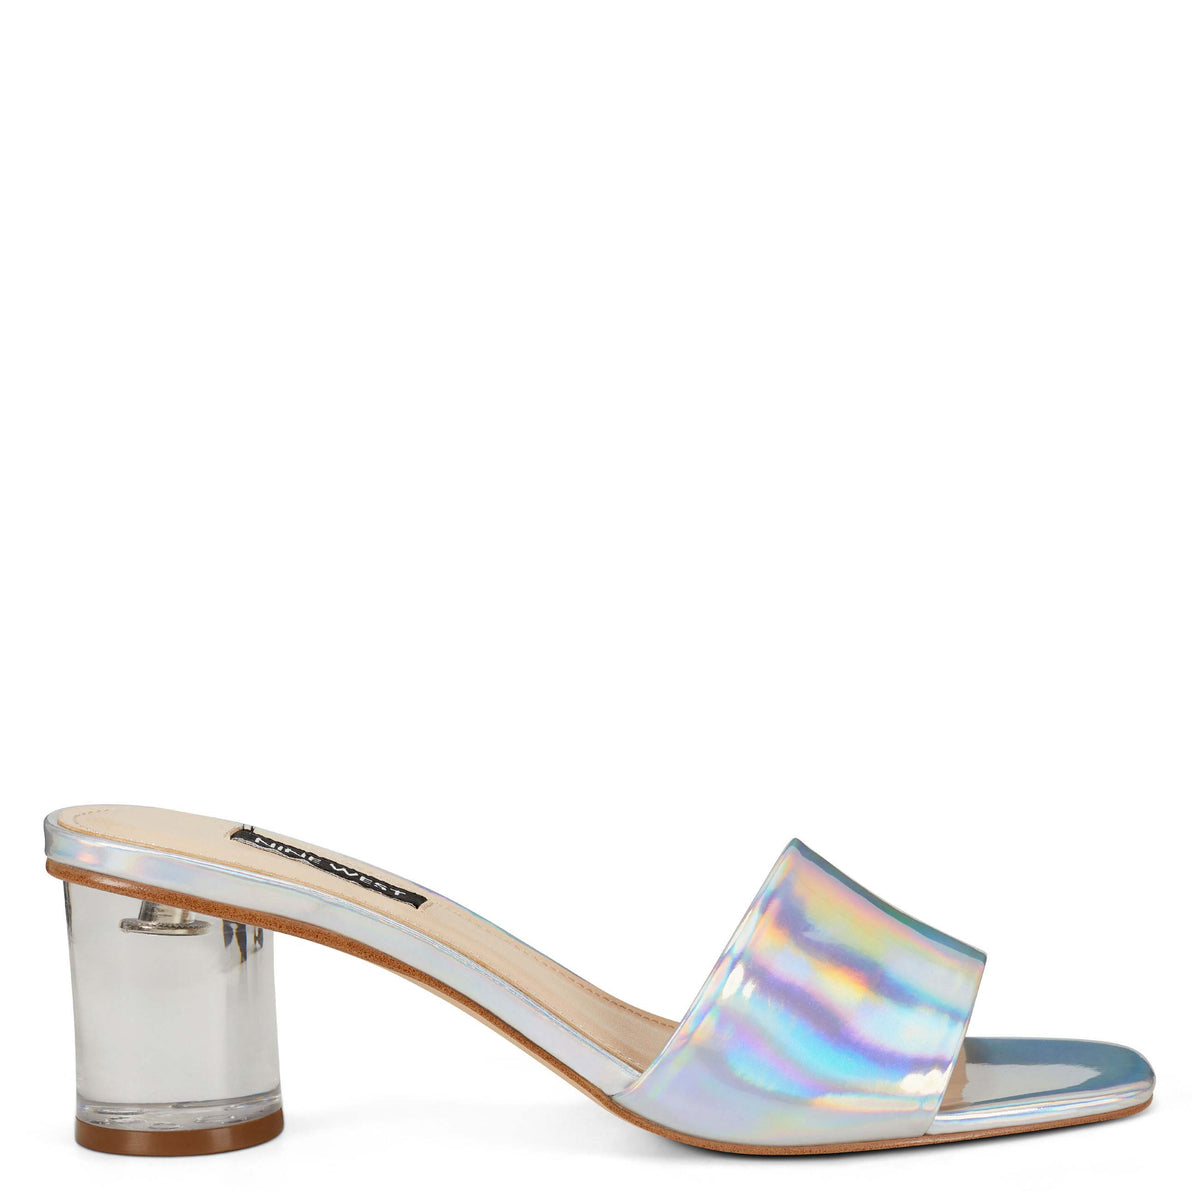 Fab Open Toe Slide Sandals